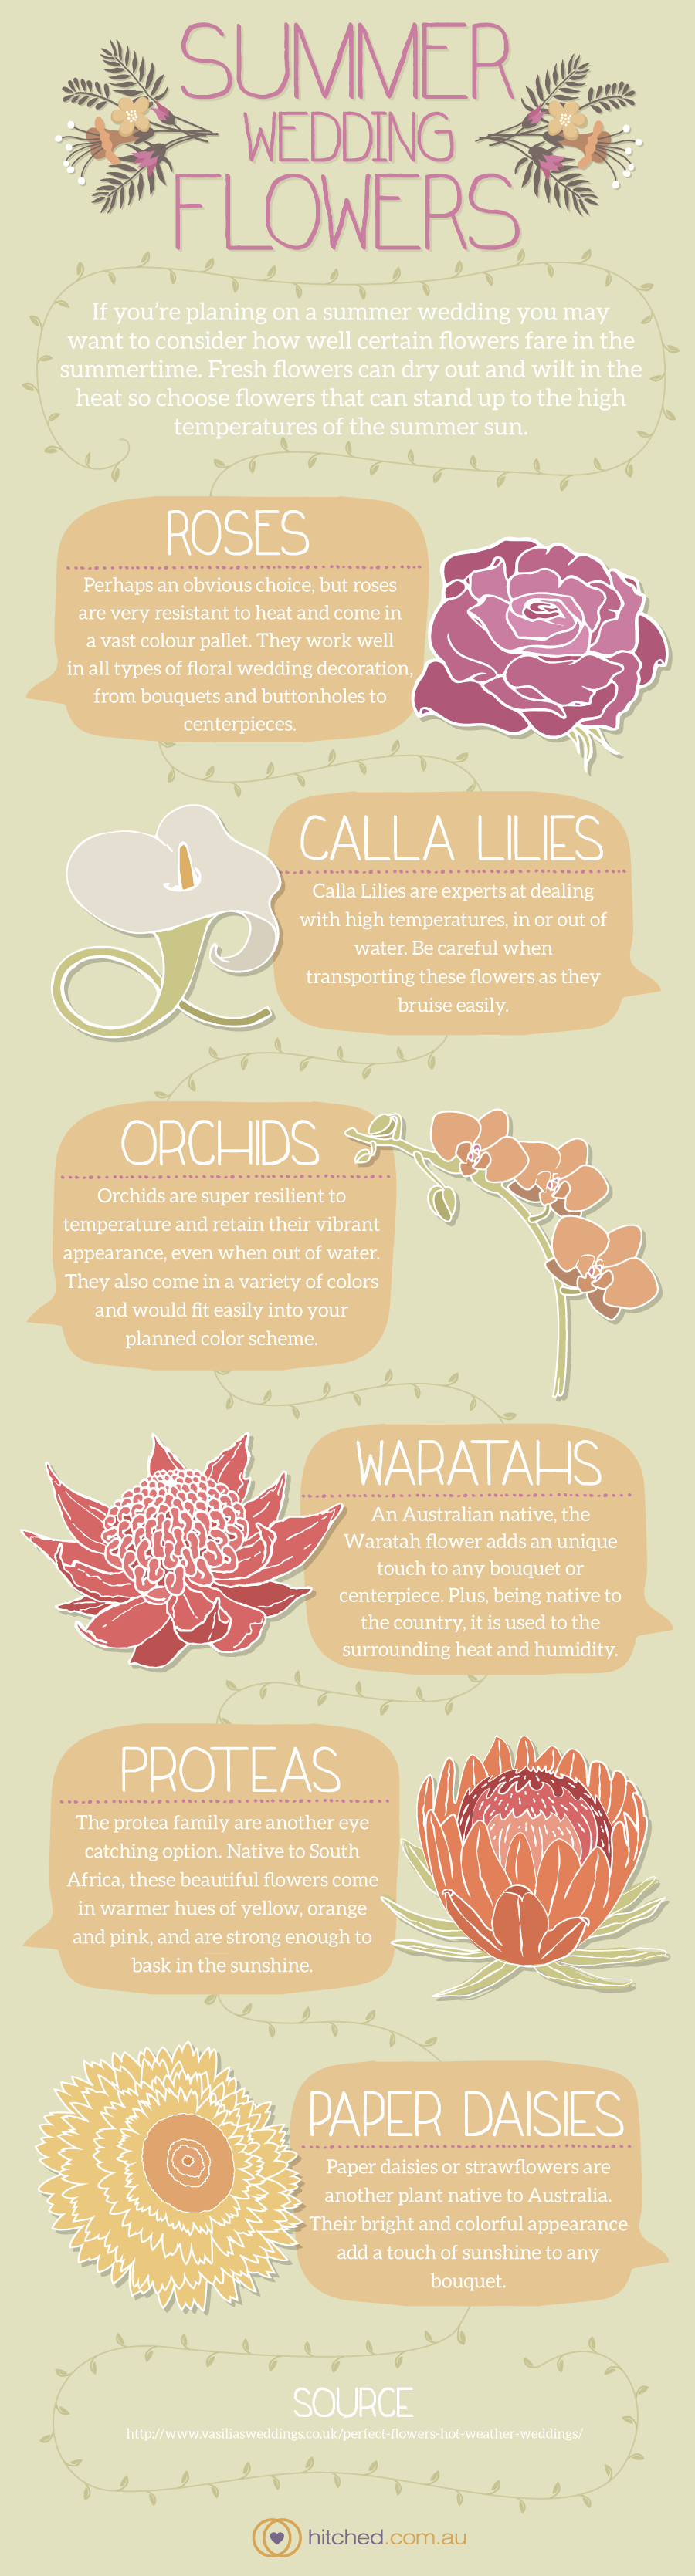 Summer wedding flowers infographic for hitched.com.au #infographic #wedding #flowers